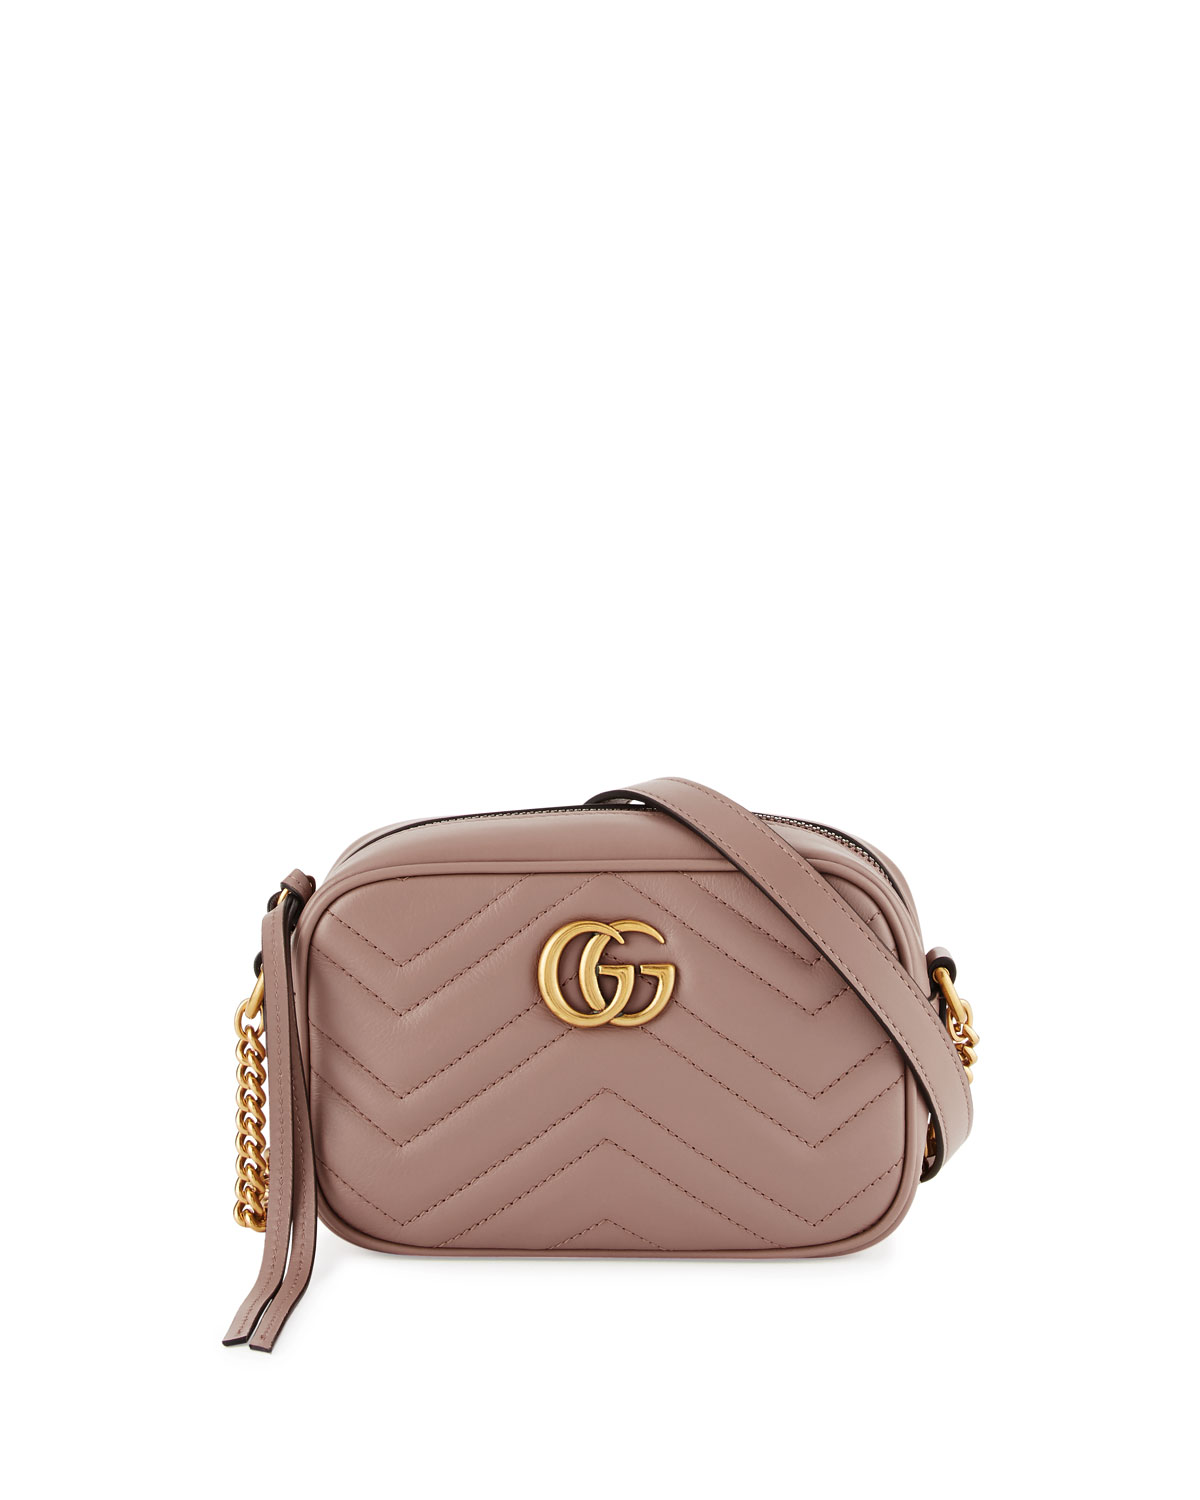 Gg Marmont Mini Matelasse Camera Bag